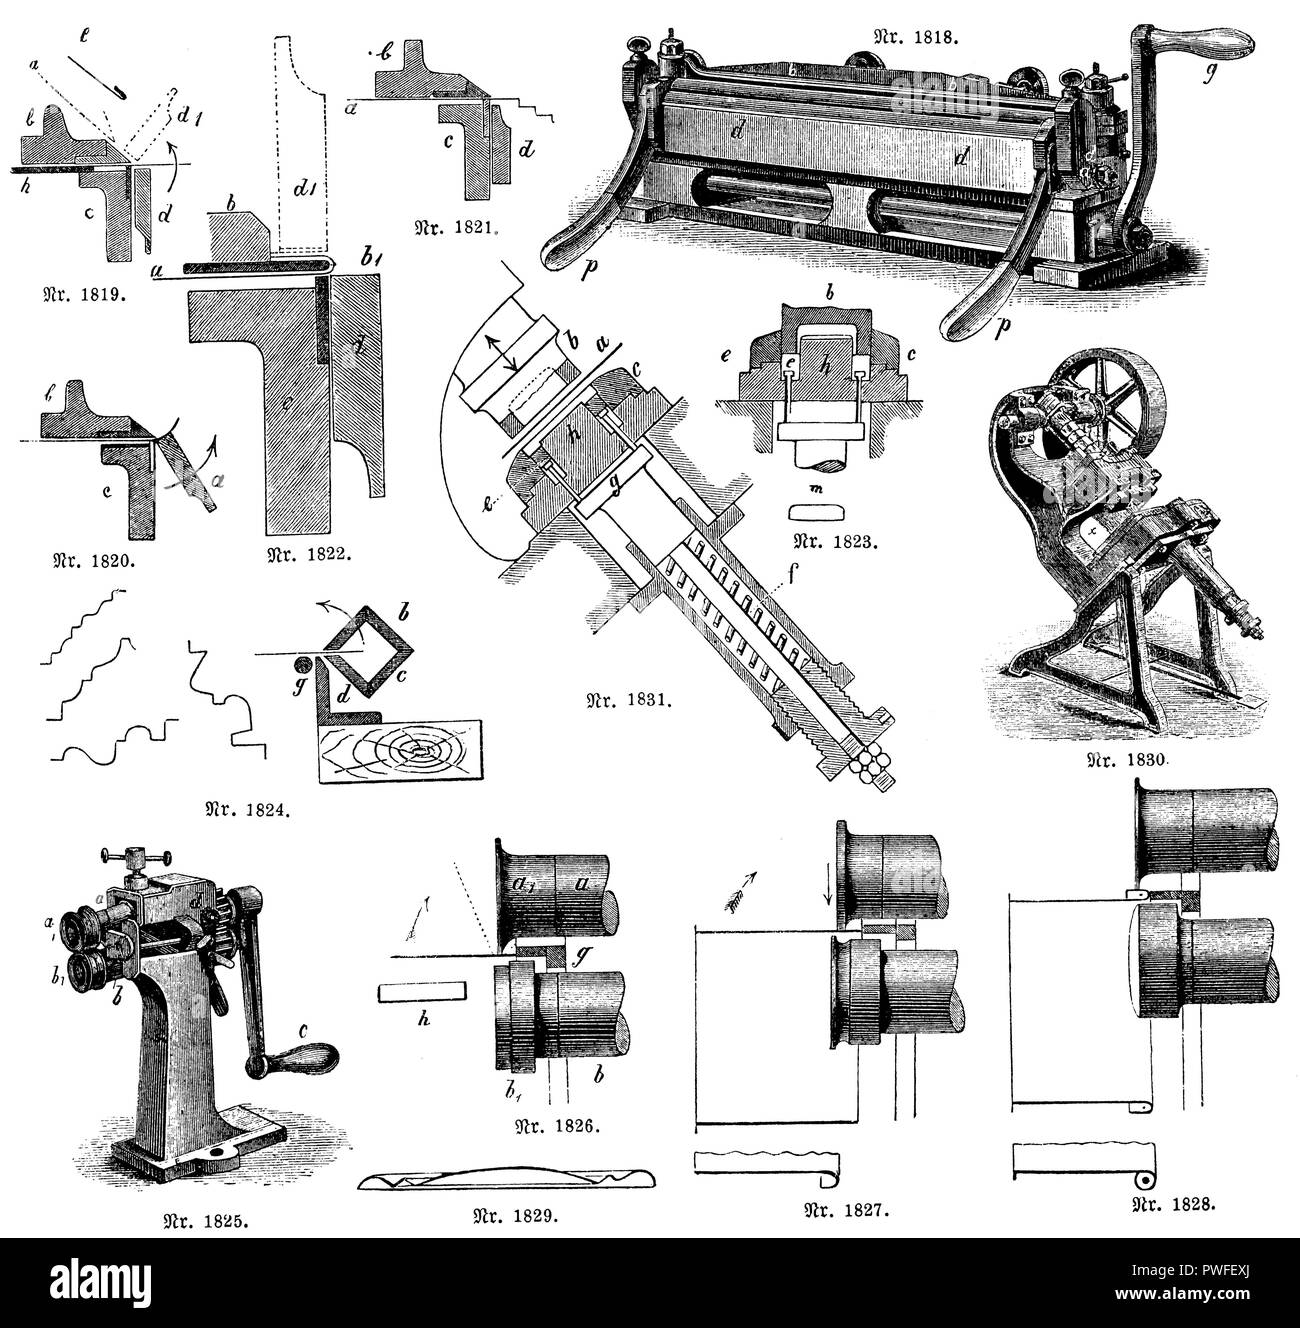 Lever Art Black And White Stock Photos Images Alamy Case Ih Wiring Schematic 1822 1819 Operation Of The Bending Machine